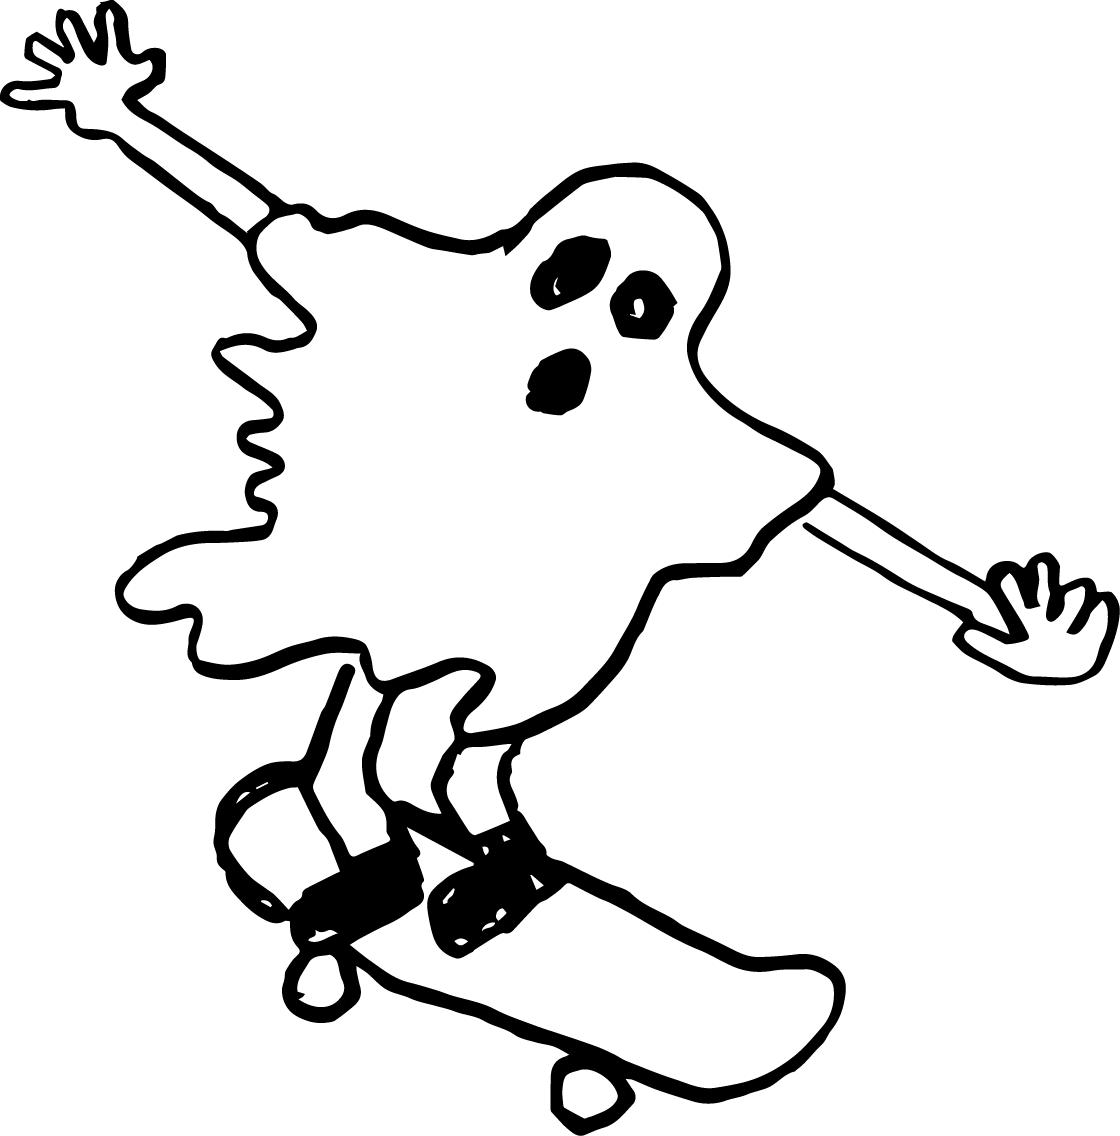 boogie frights.png